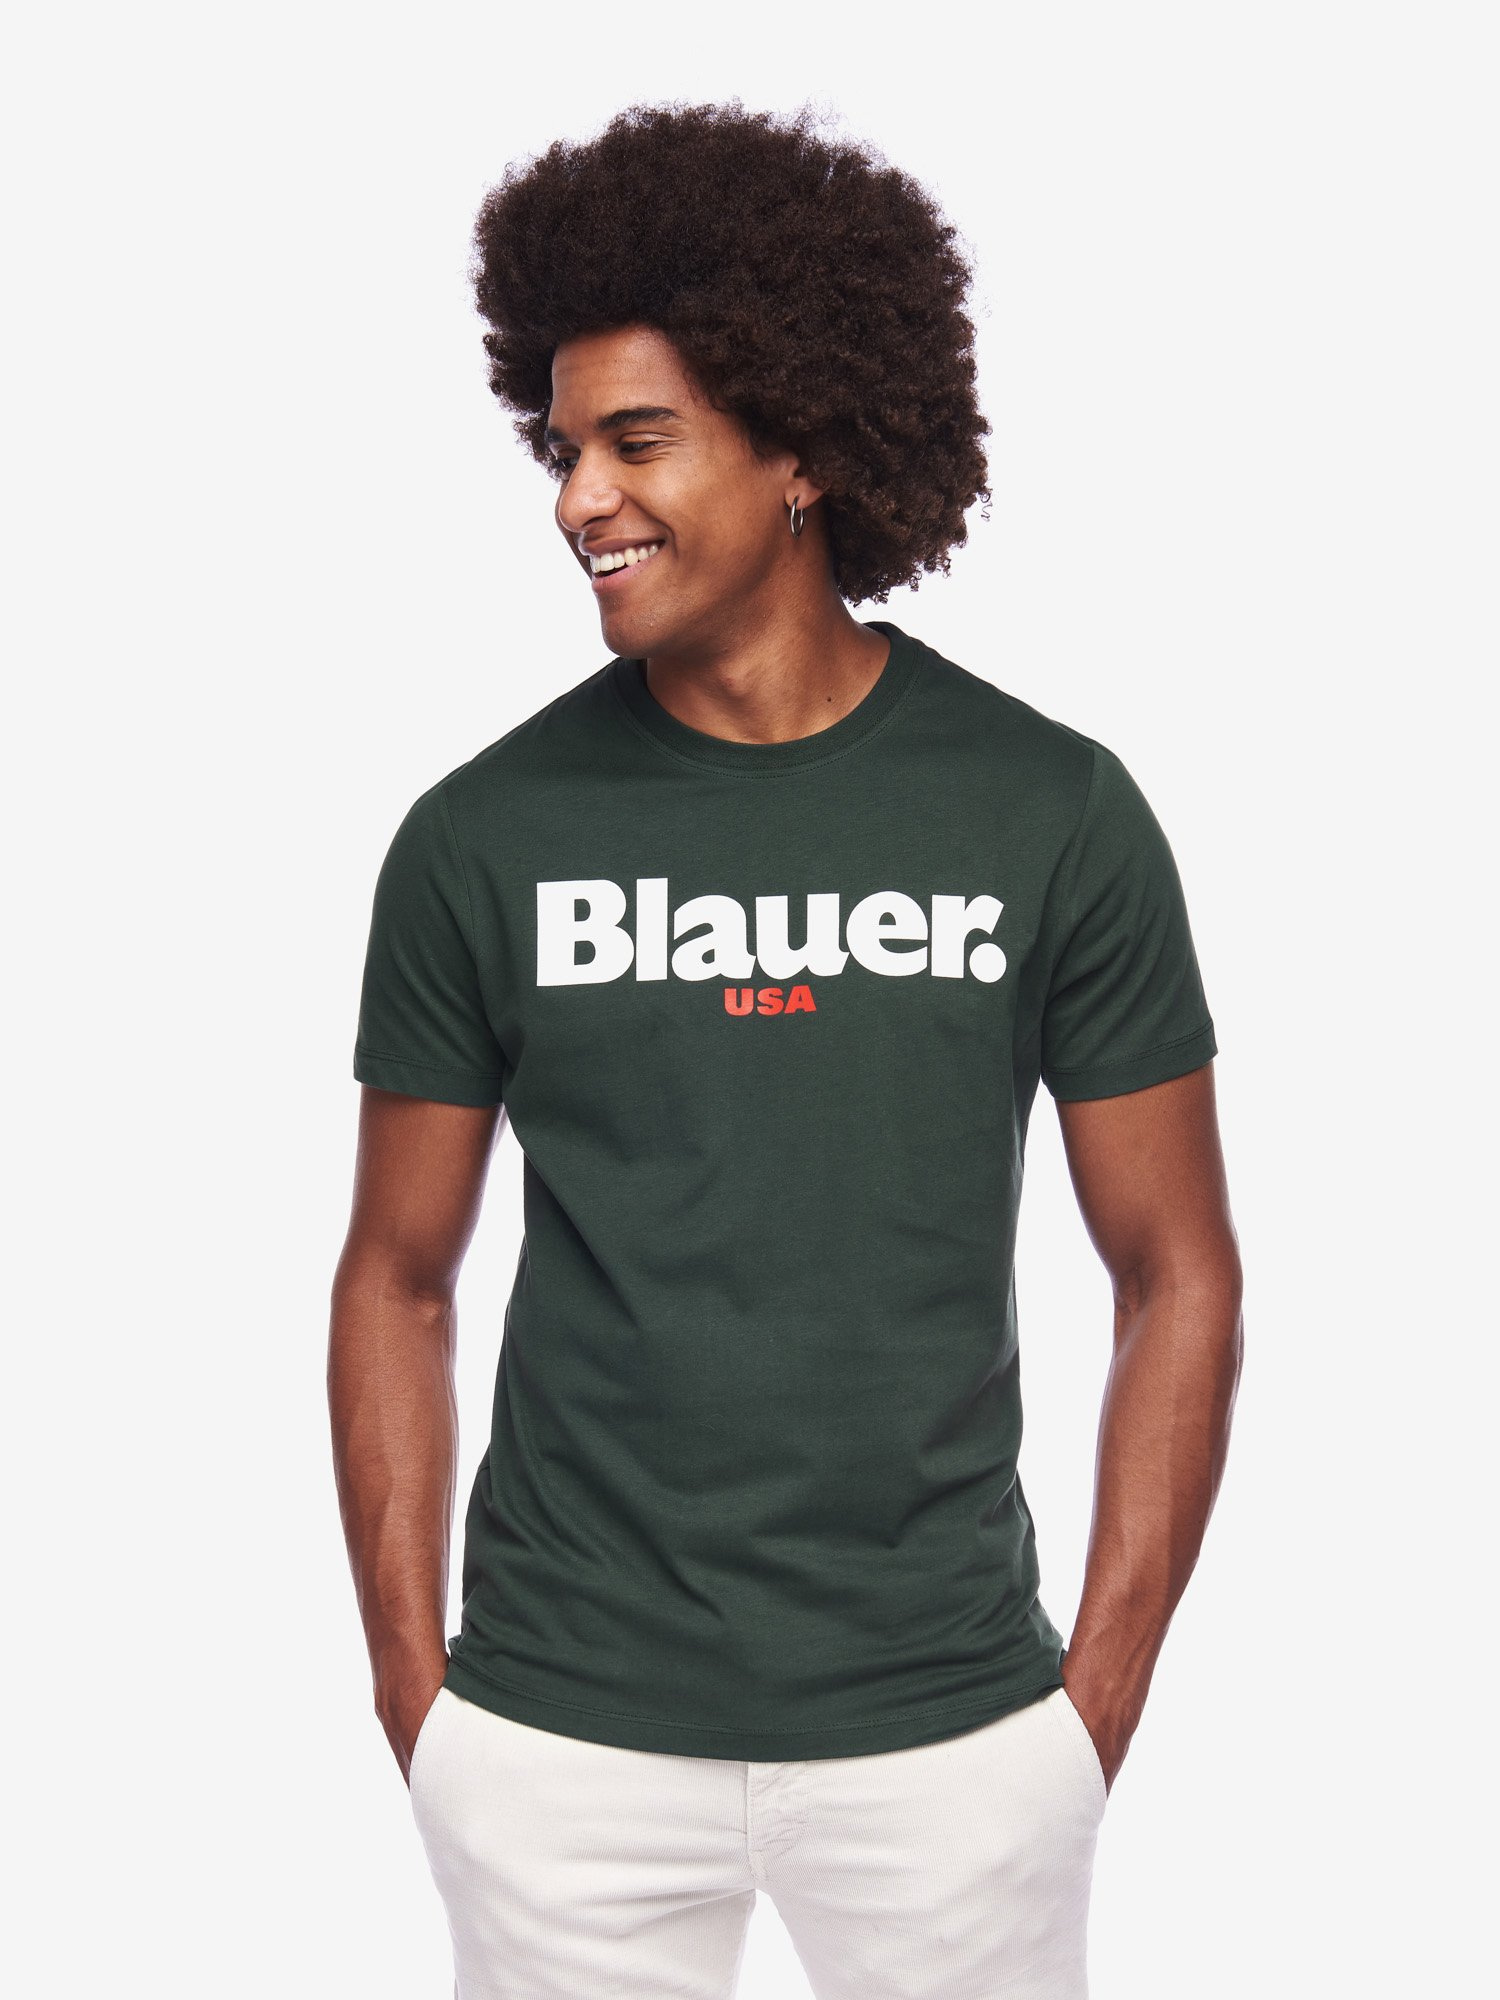 COTTON LOGO T-SHIRT - Blauer